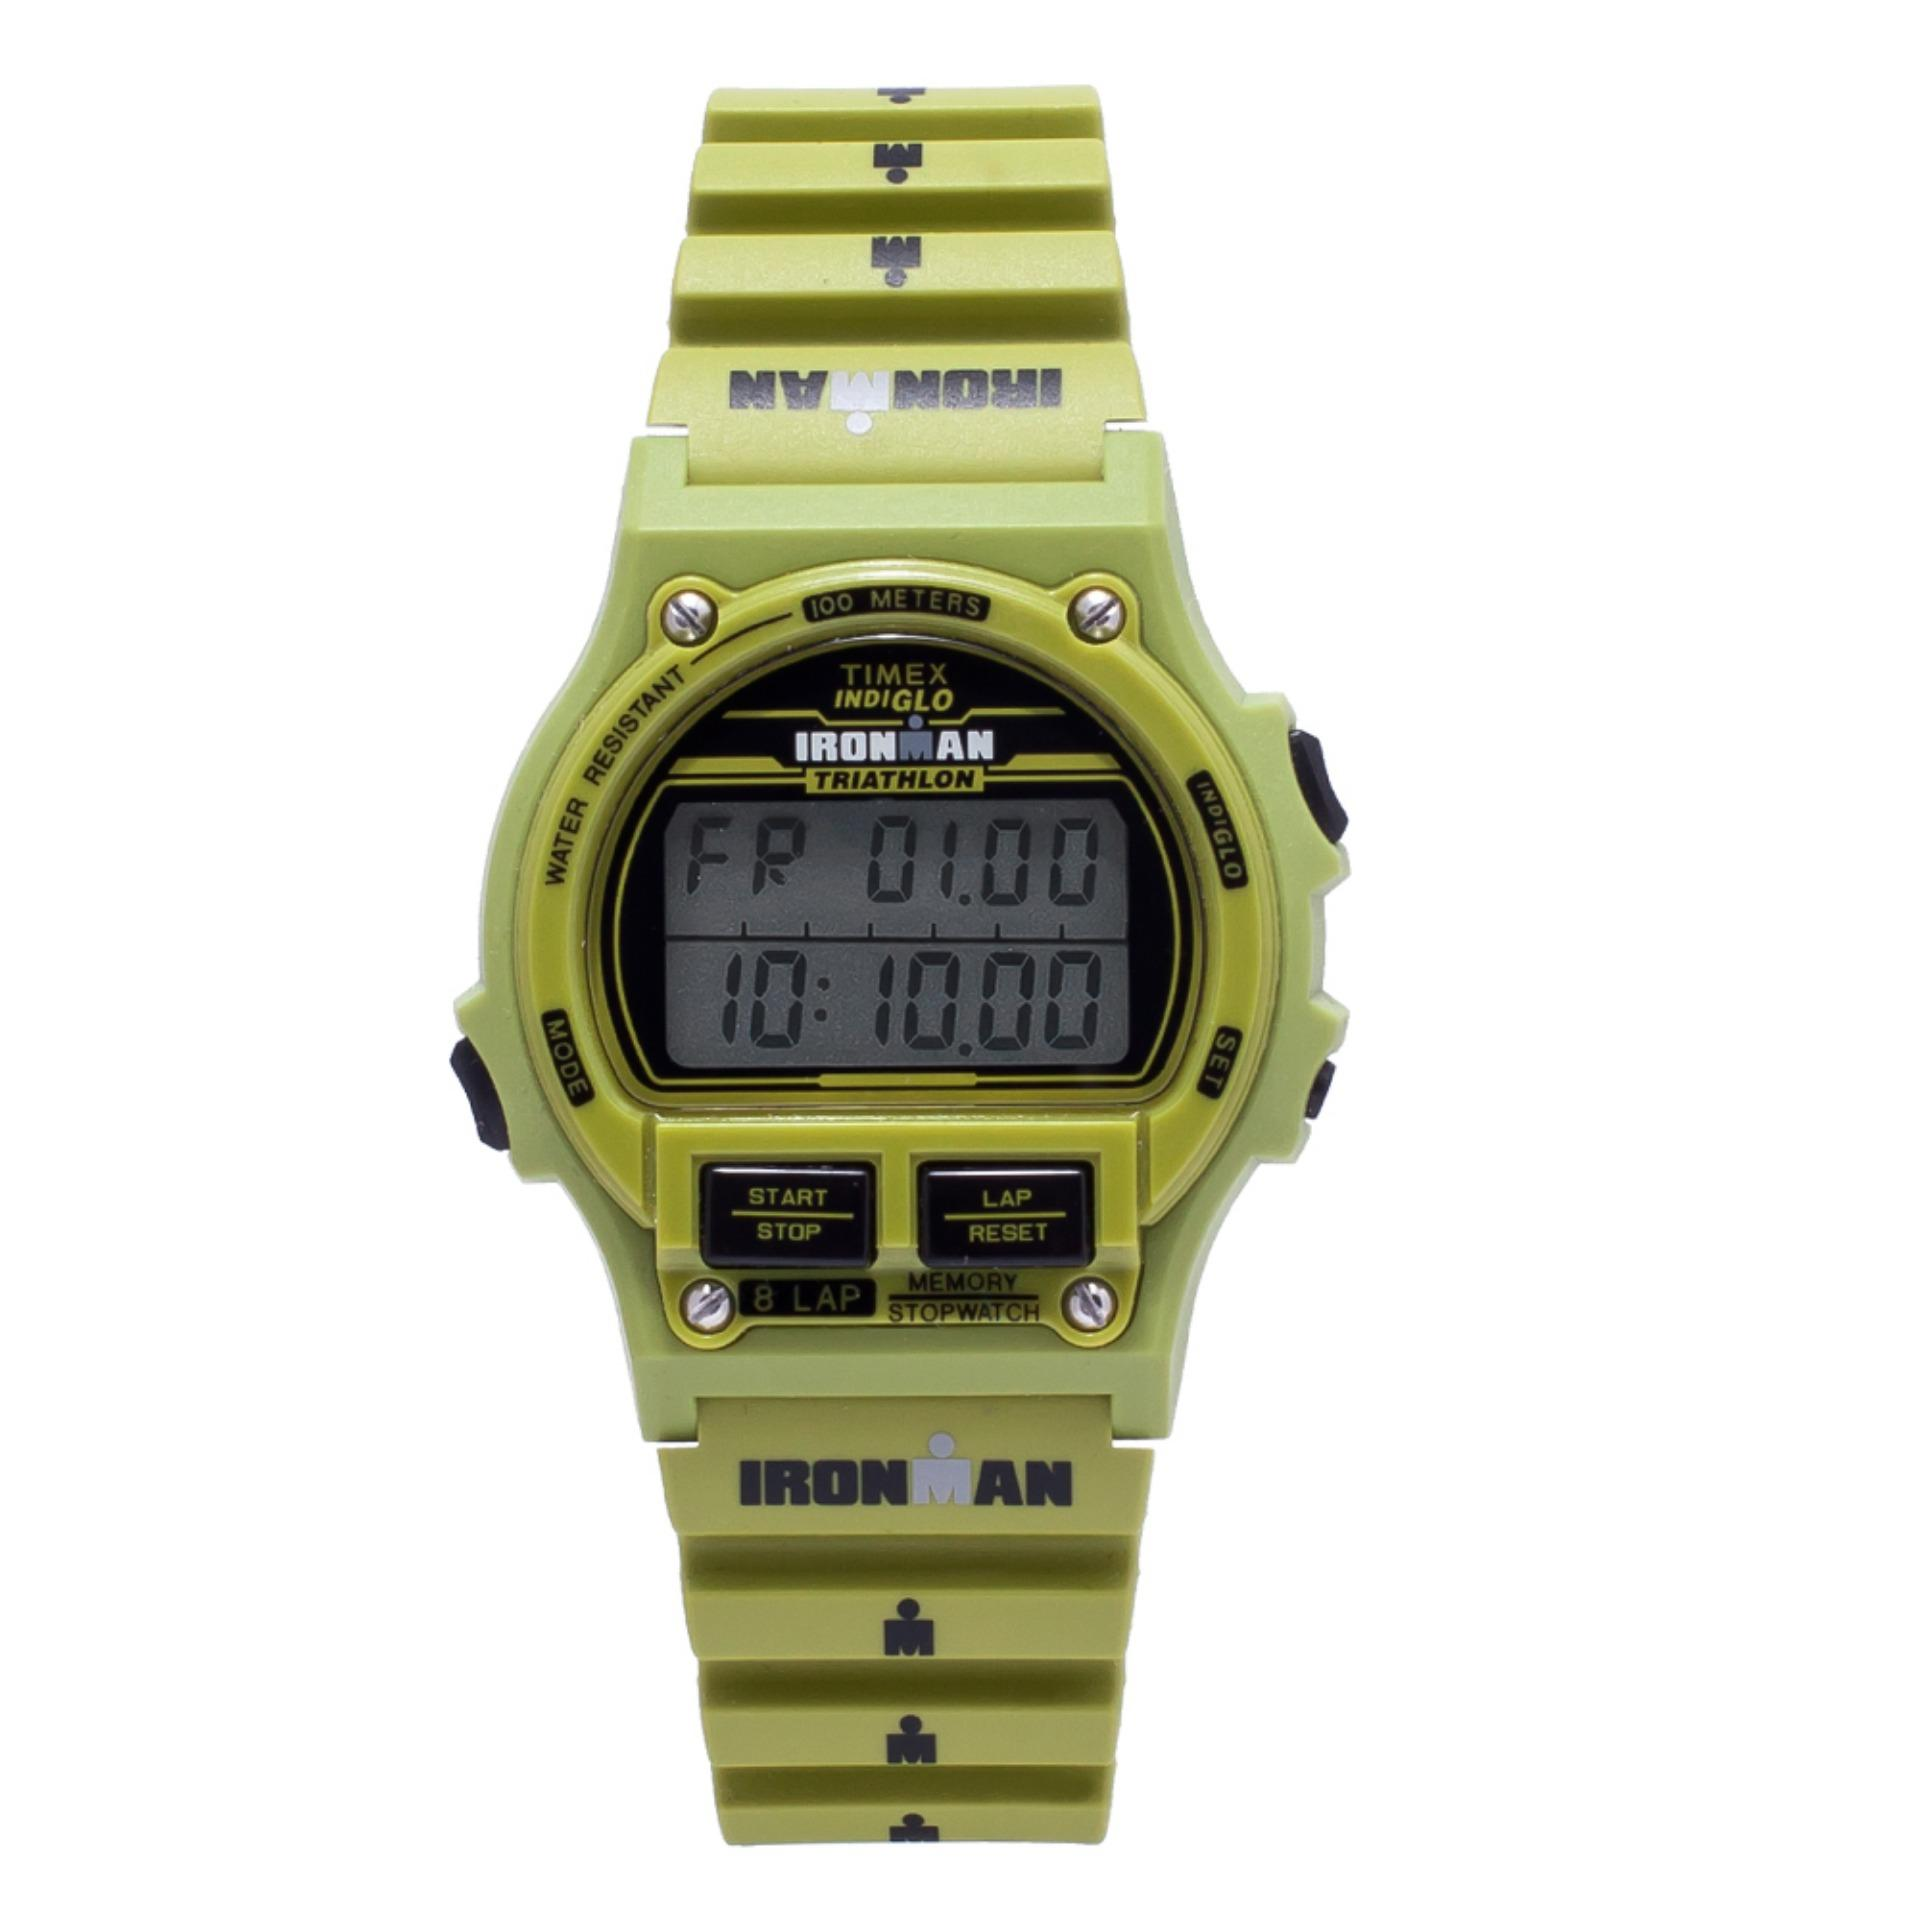 77e4b39bfc8 Timex Philippines  Timex price list - Timex Watches for Men   Women ...